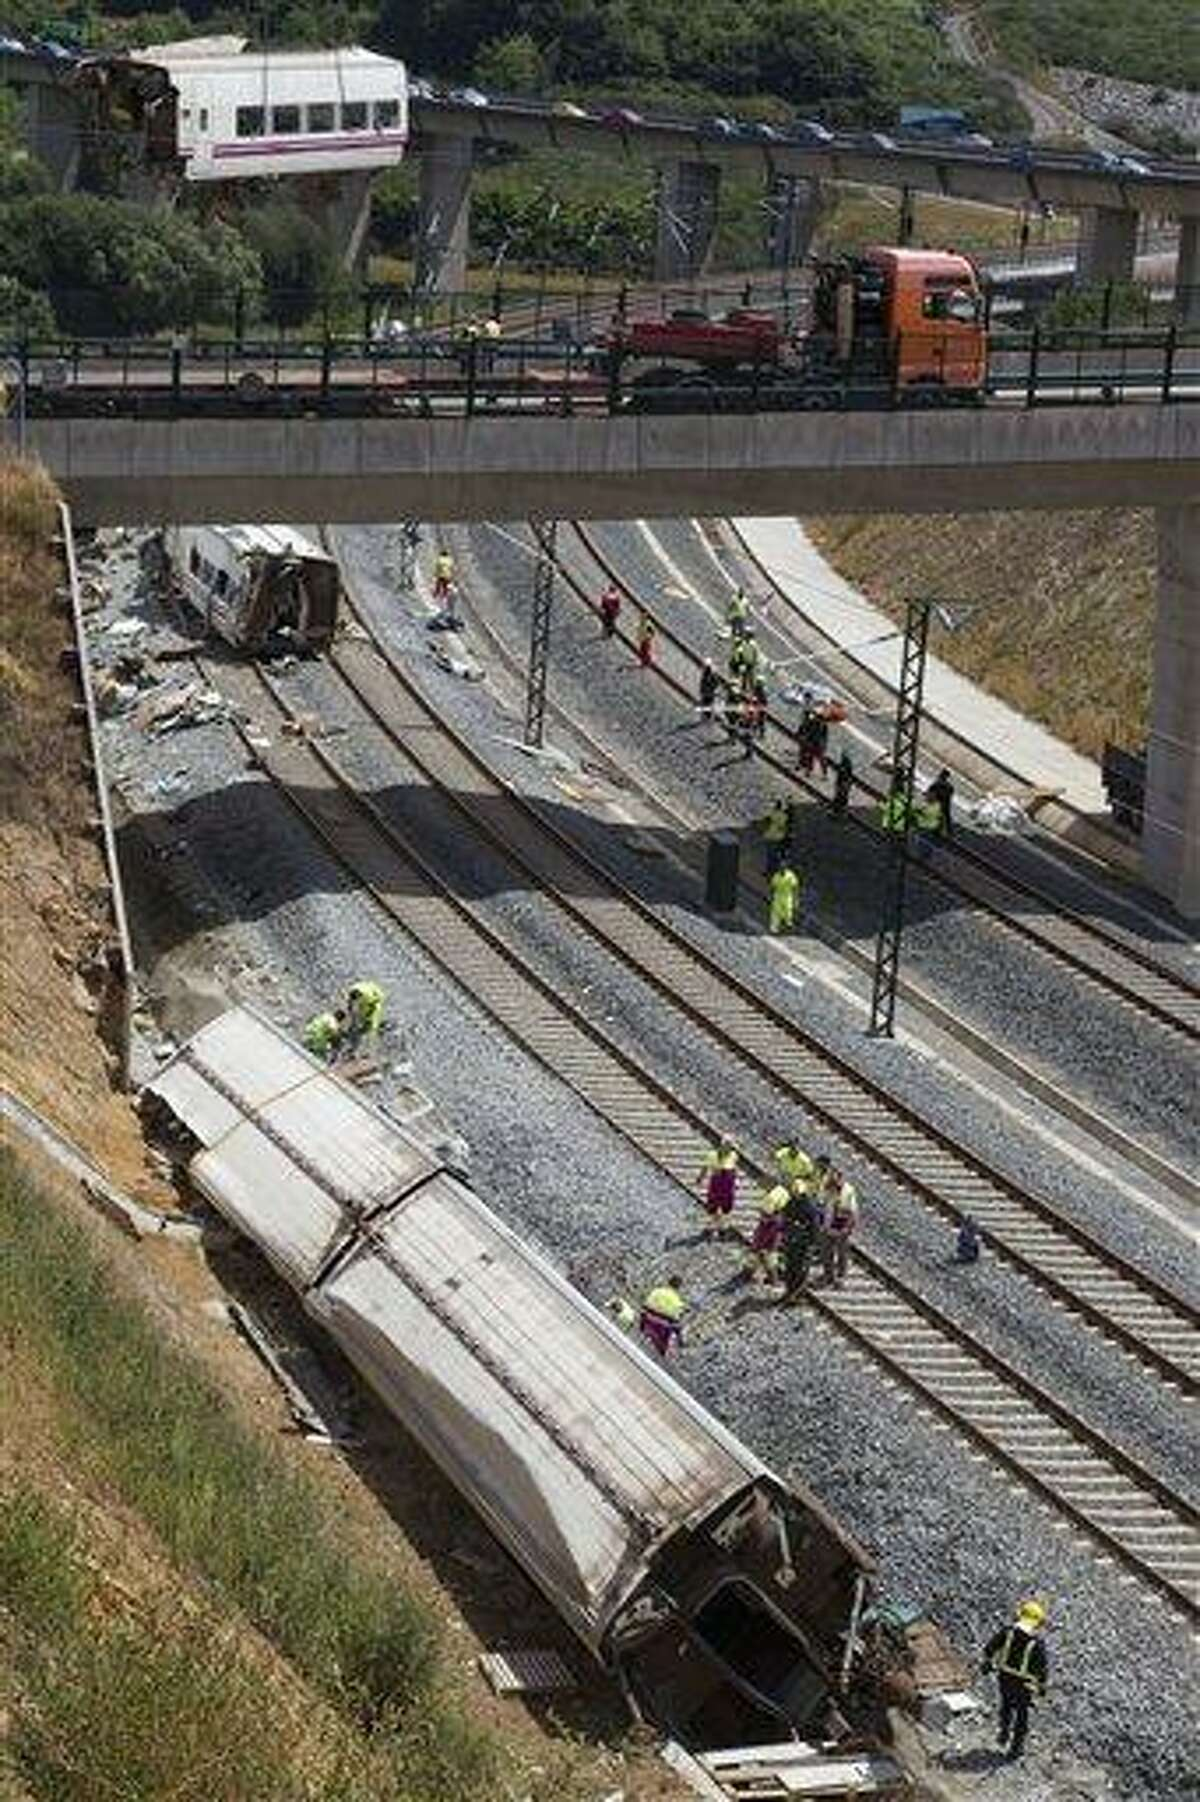 Derailed cars are removed as emergency personnel work at the site of a train accident in Santiago de Compostela, Spain, on Thursday, July 25, 2013. An Associated Press analysis of video images shows that a Spanish train was traveling well above the speed limit when it derailed, killing at least 80 people. Officials say the speed limit on that section of track is 80 kph (50 mph). (AP Photo/ Lalo Villar)